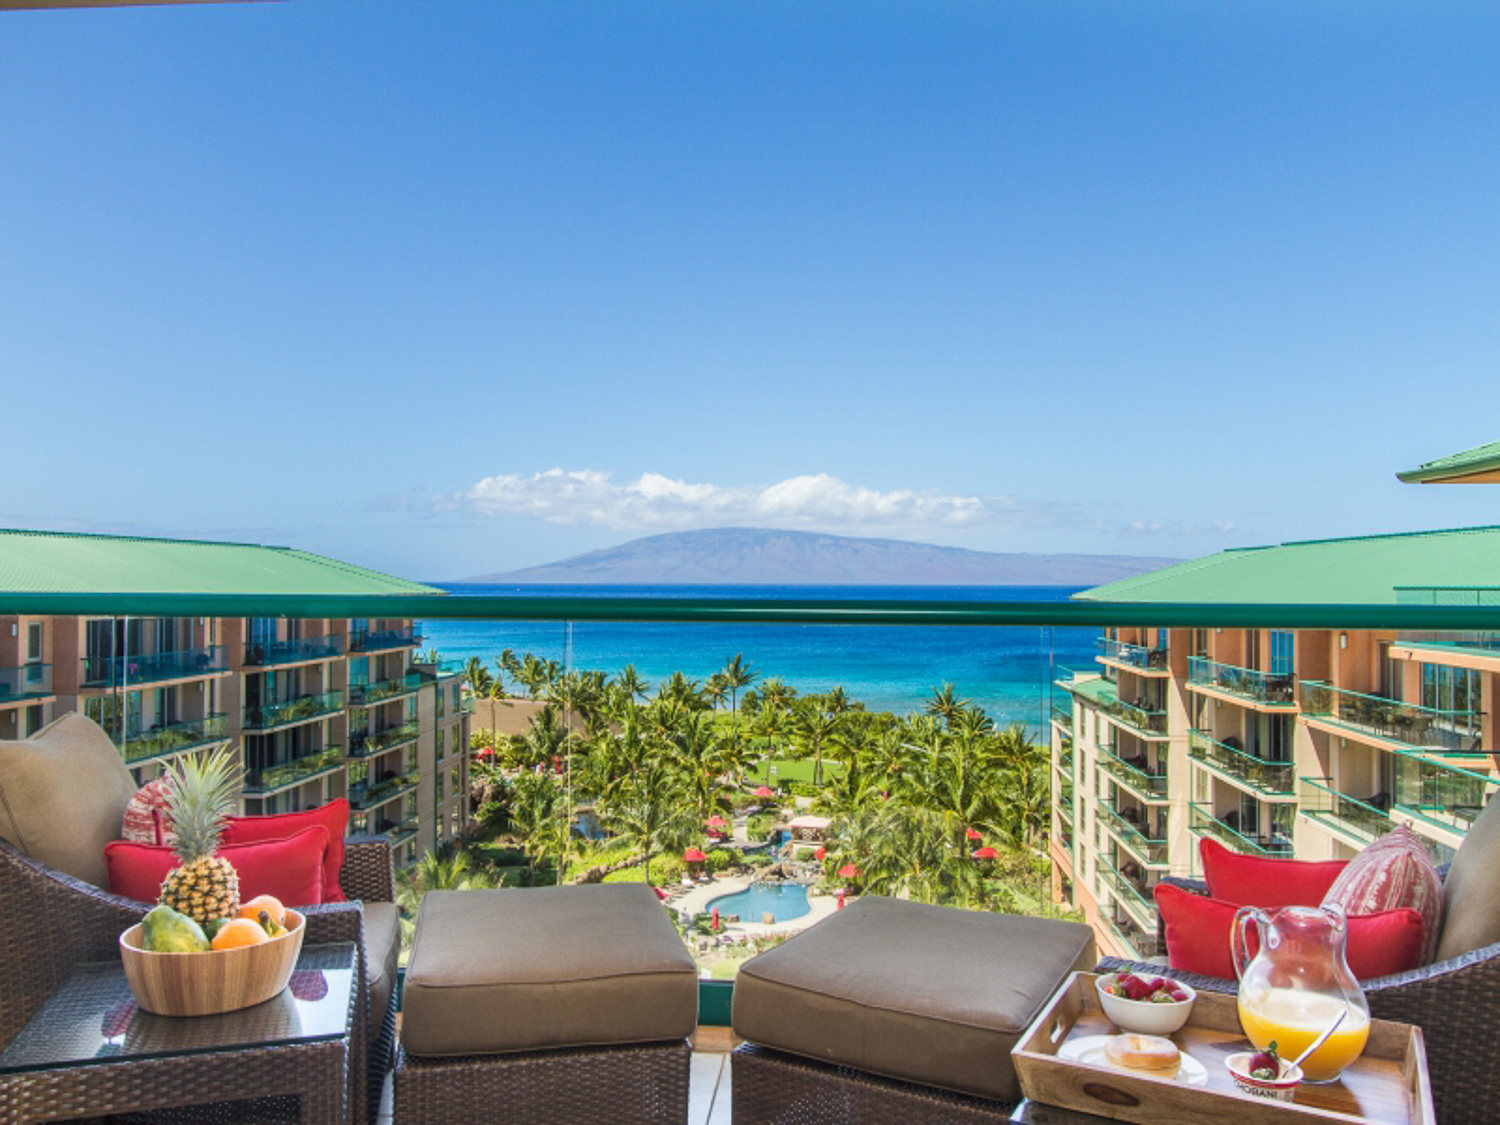 maui condo for sale with view